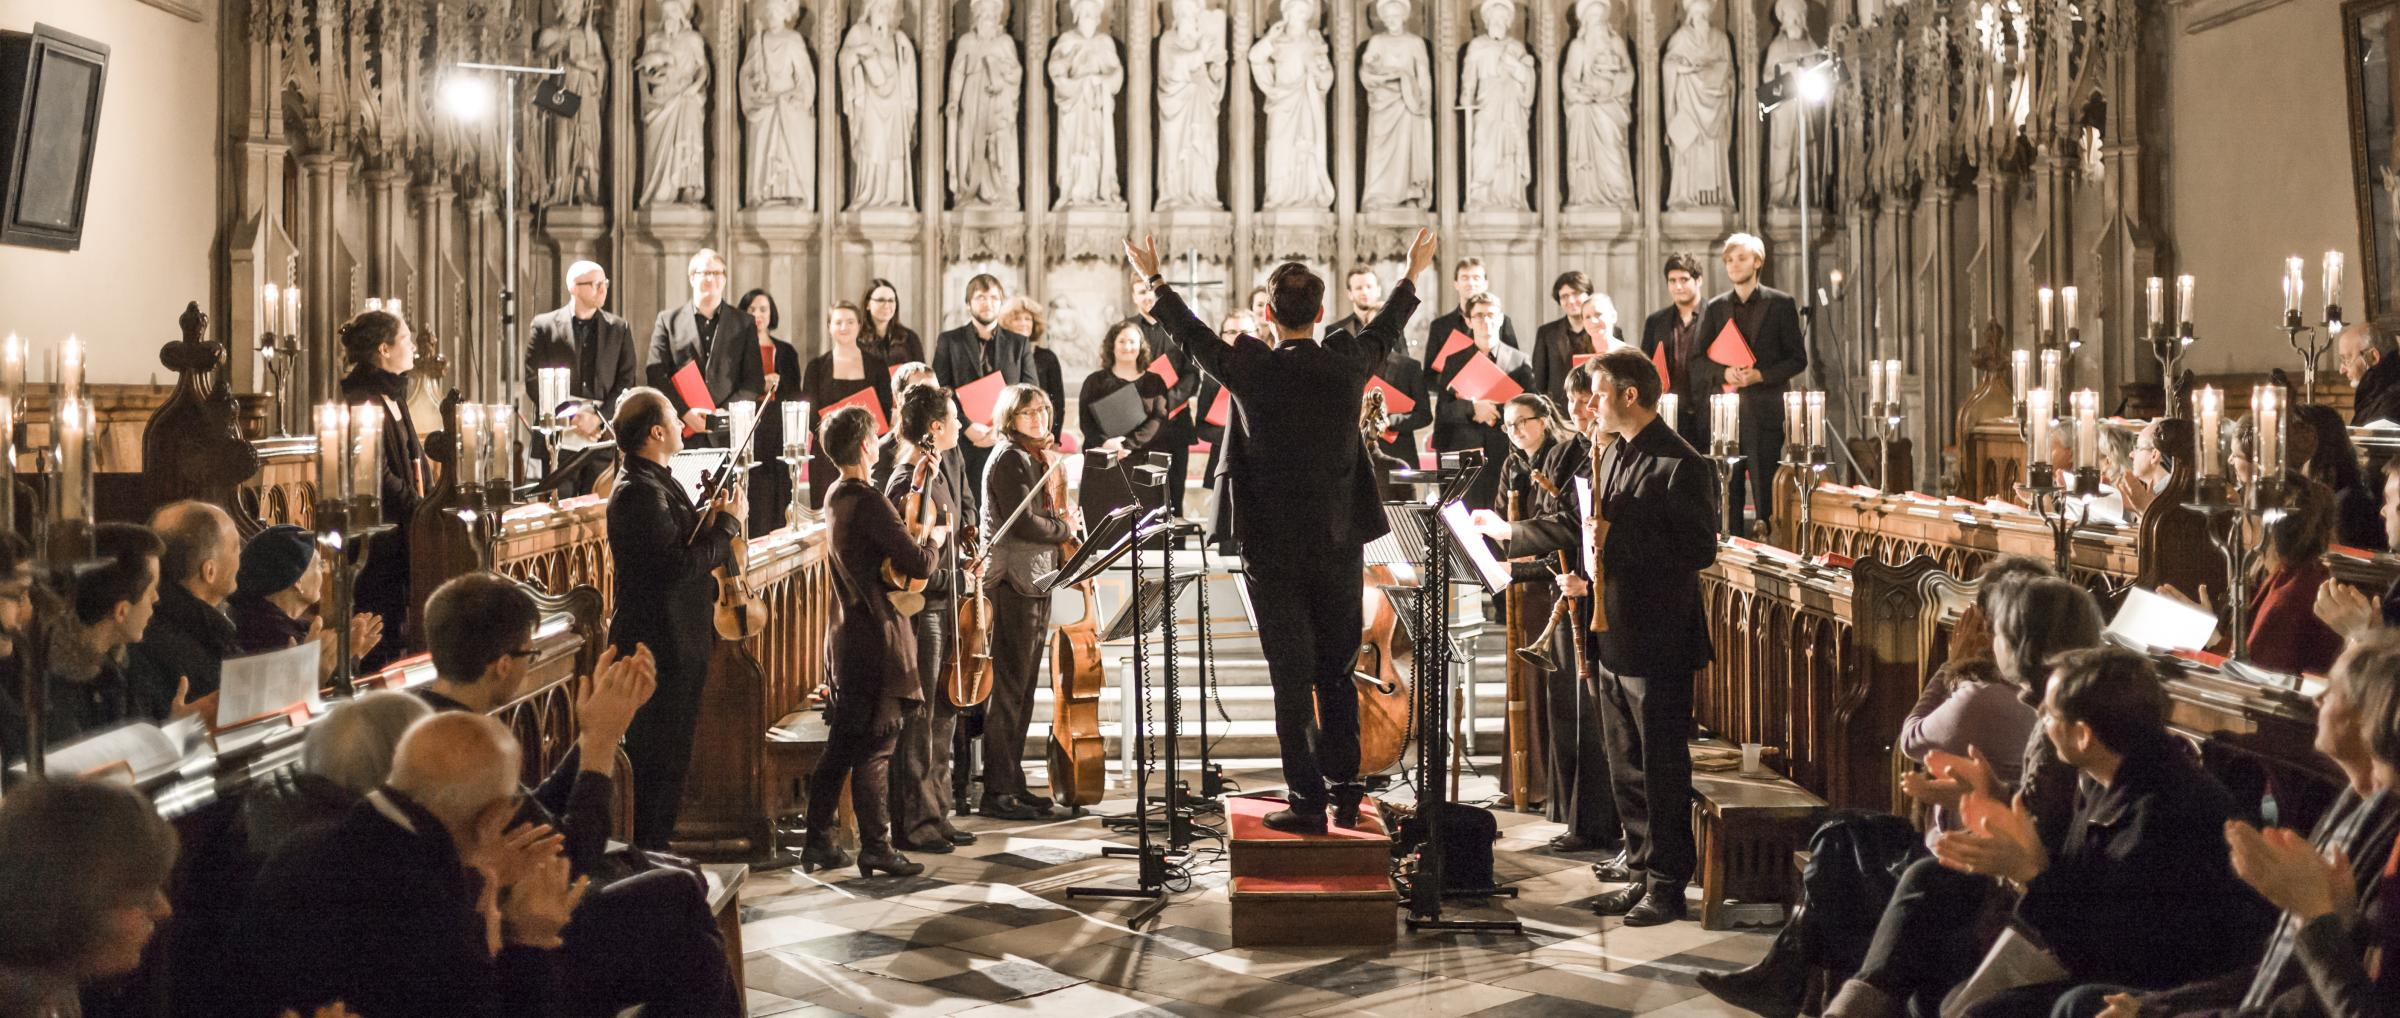 Superlative talent: Oxford Bach Soloists